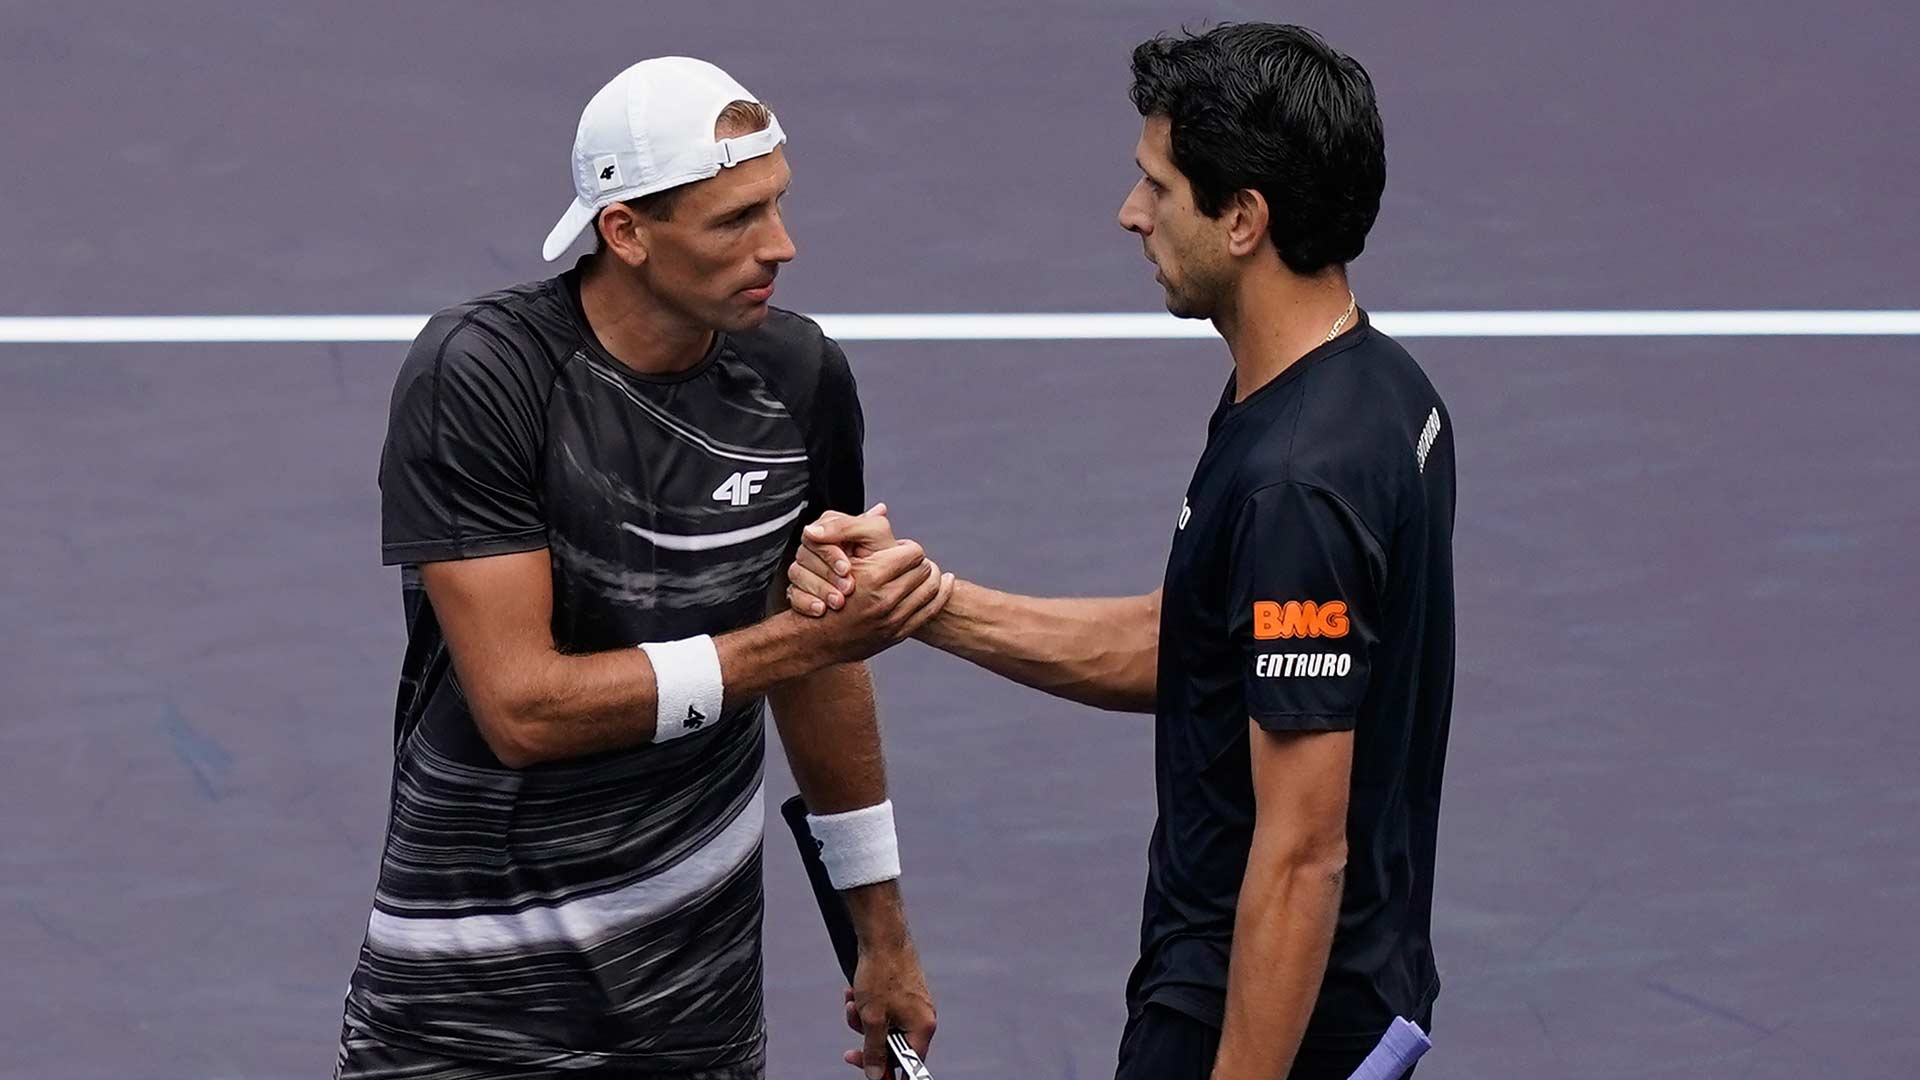 Kubot and Melo in Shanghai 2018